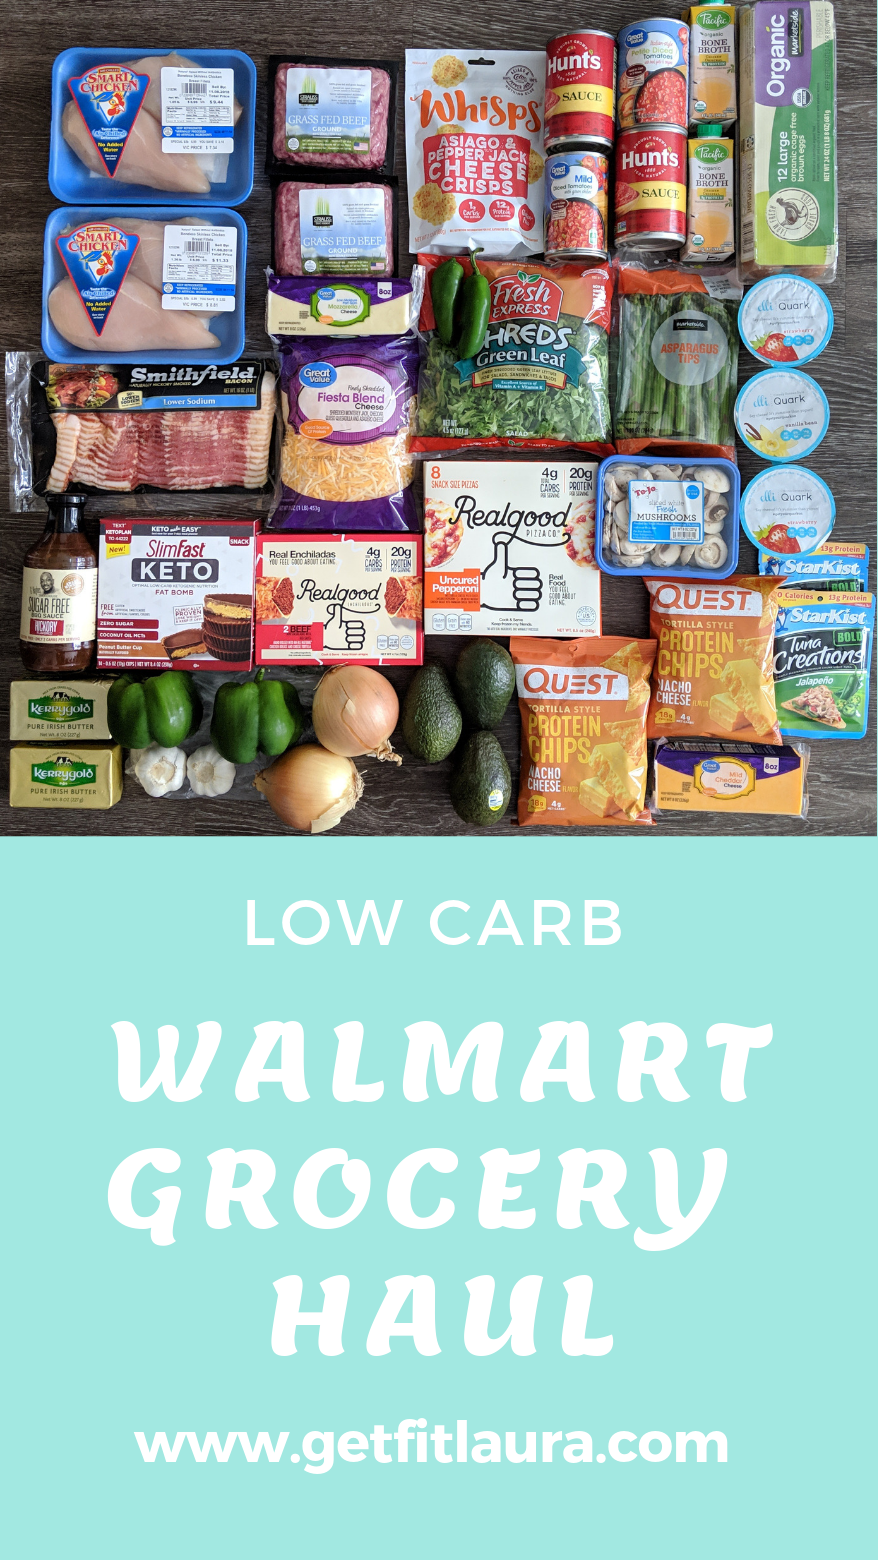 Low Carb Walmart Grocery Haul Low Carb Grocery Low Carb Shopping List Low Carb Grocery List